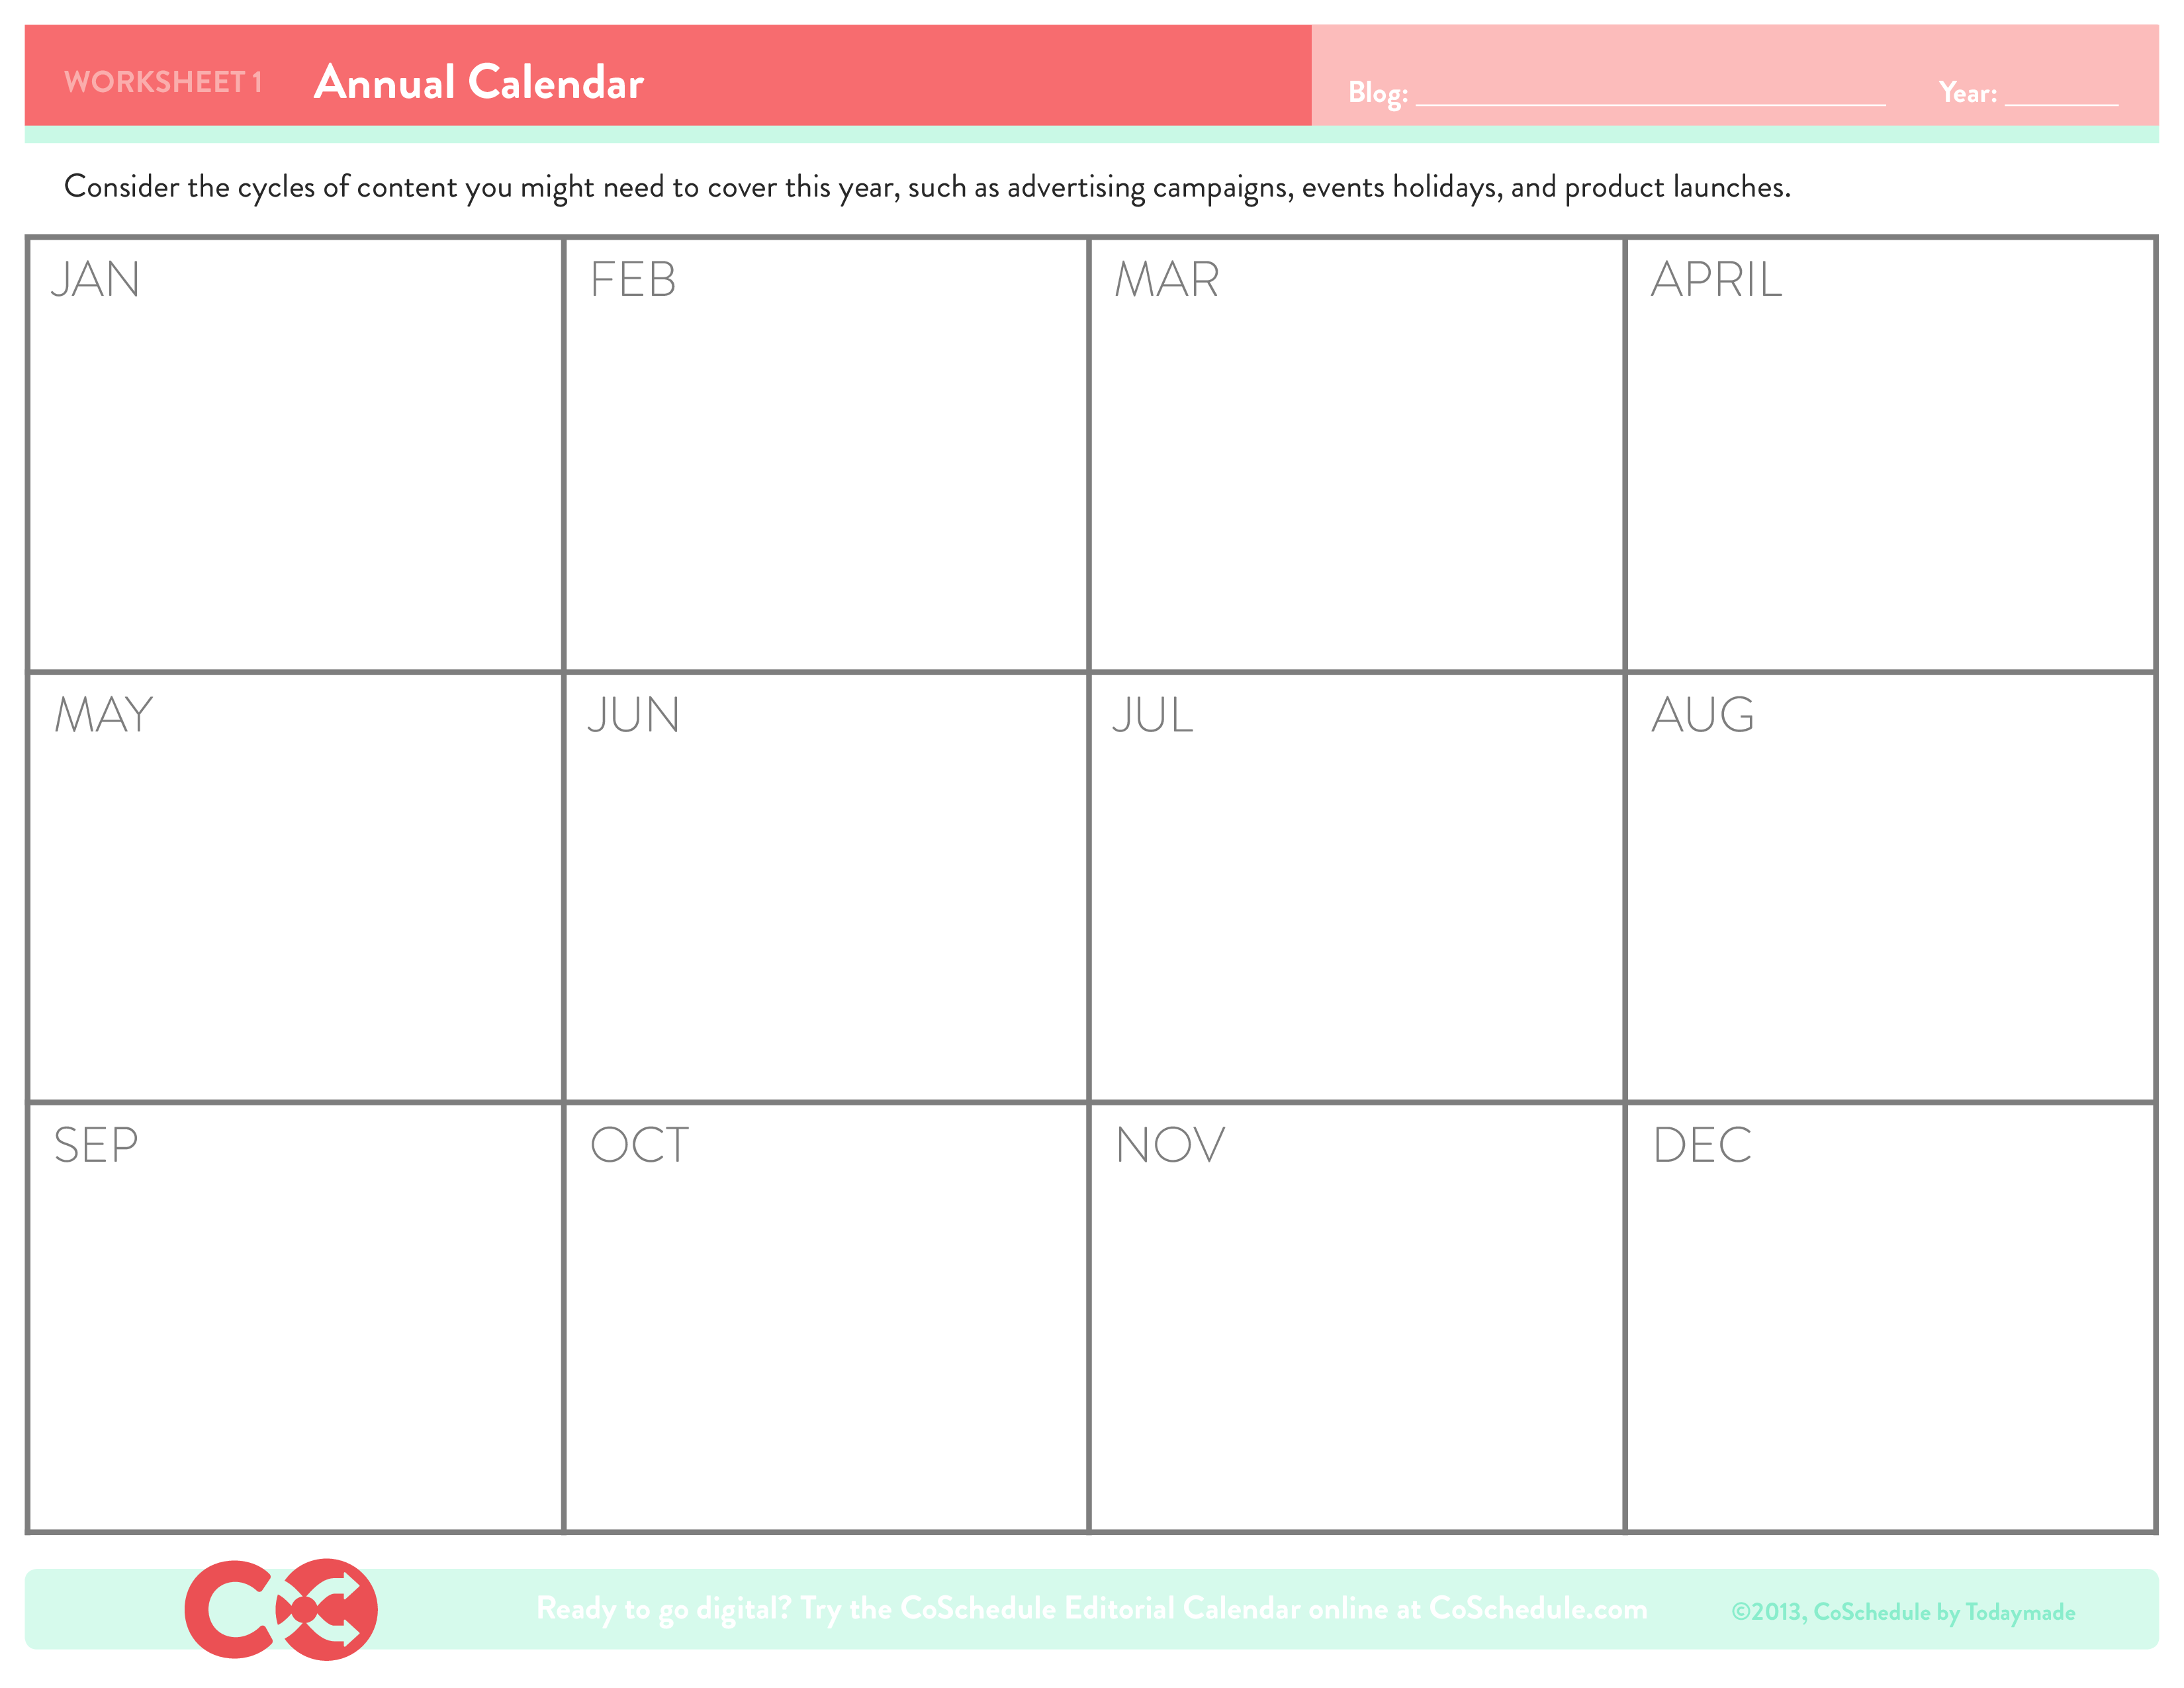 Blank Annual Calendar Sample | Templates at ...